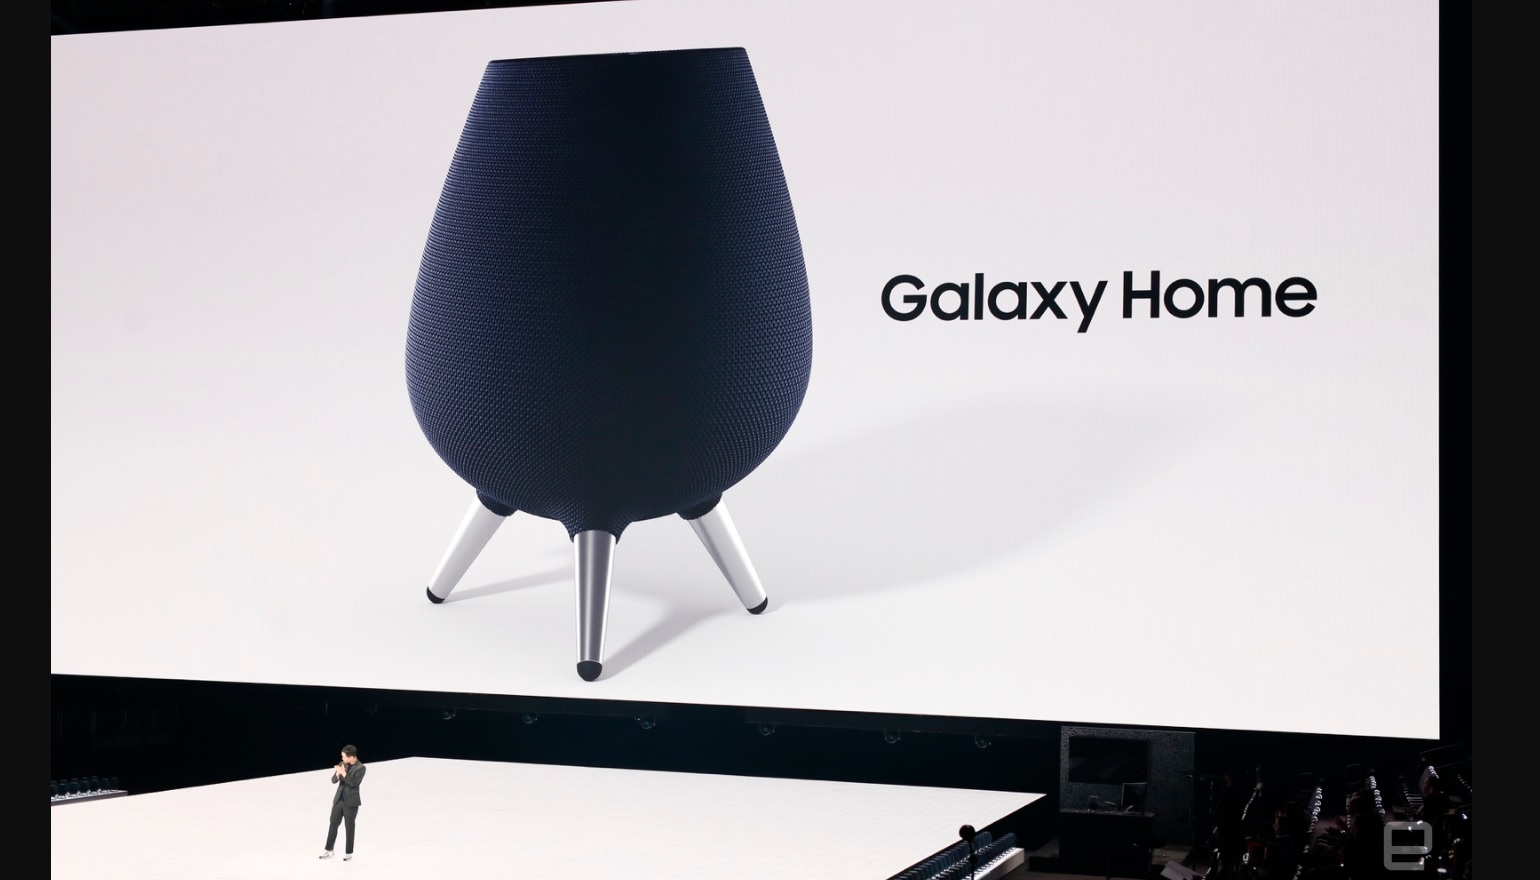 Galaxy Home op podium.